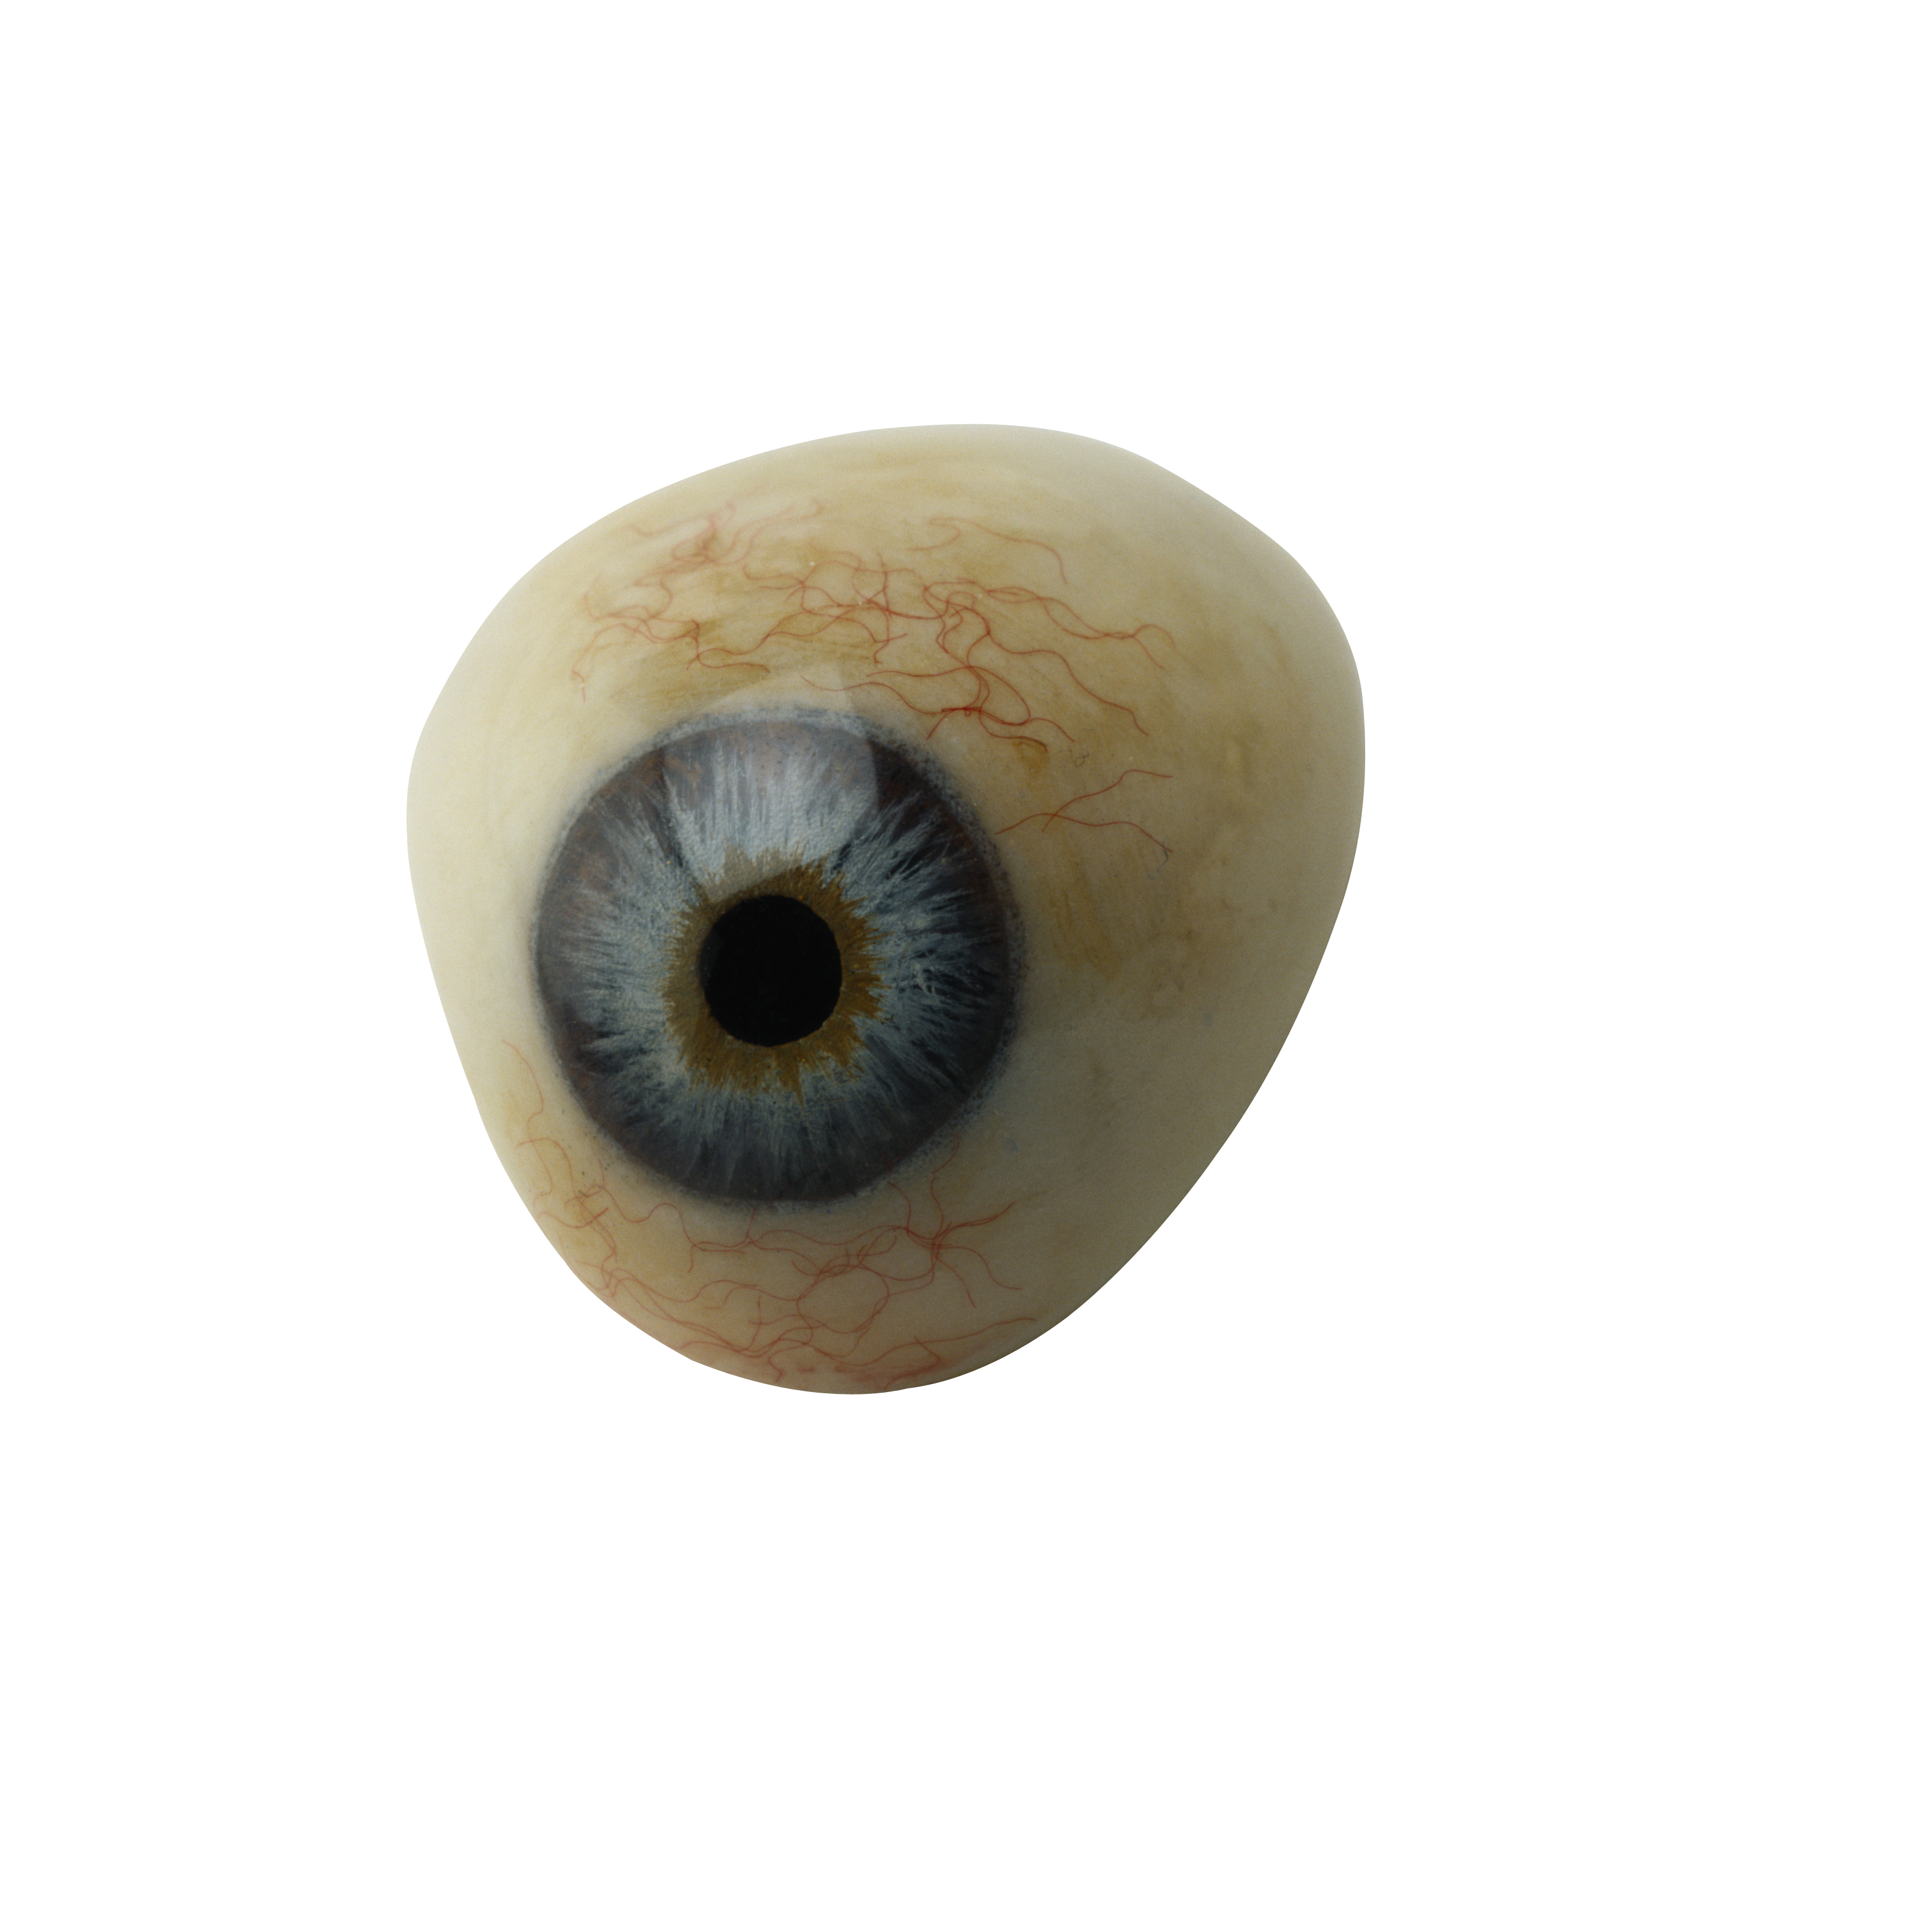 Eye transparent PNG #42311.